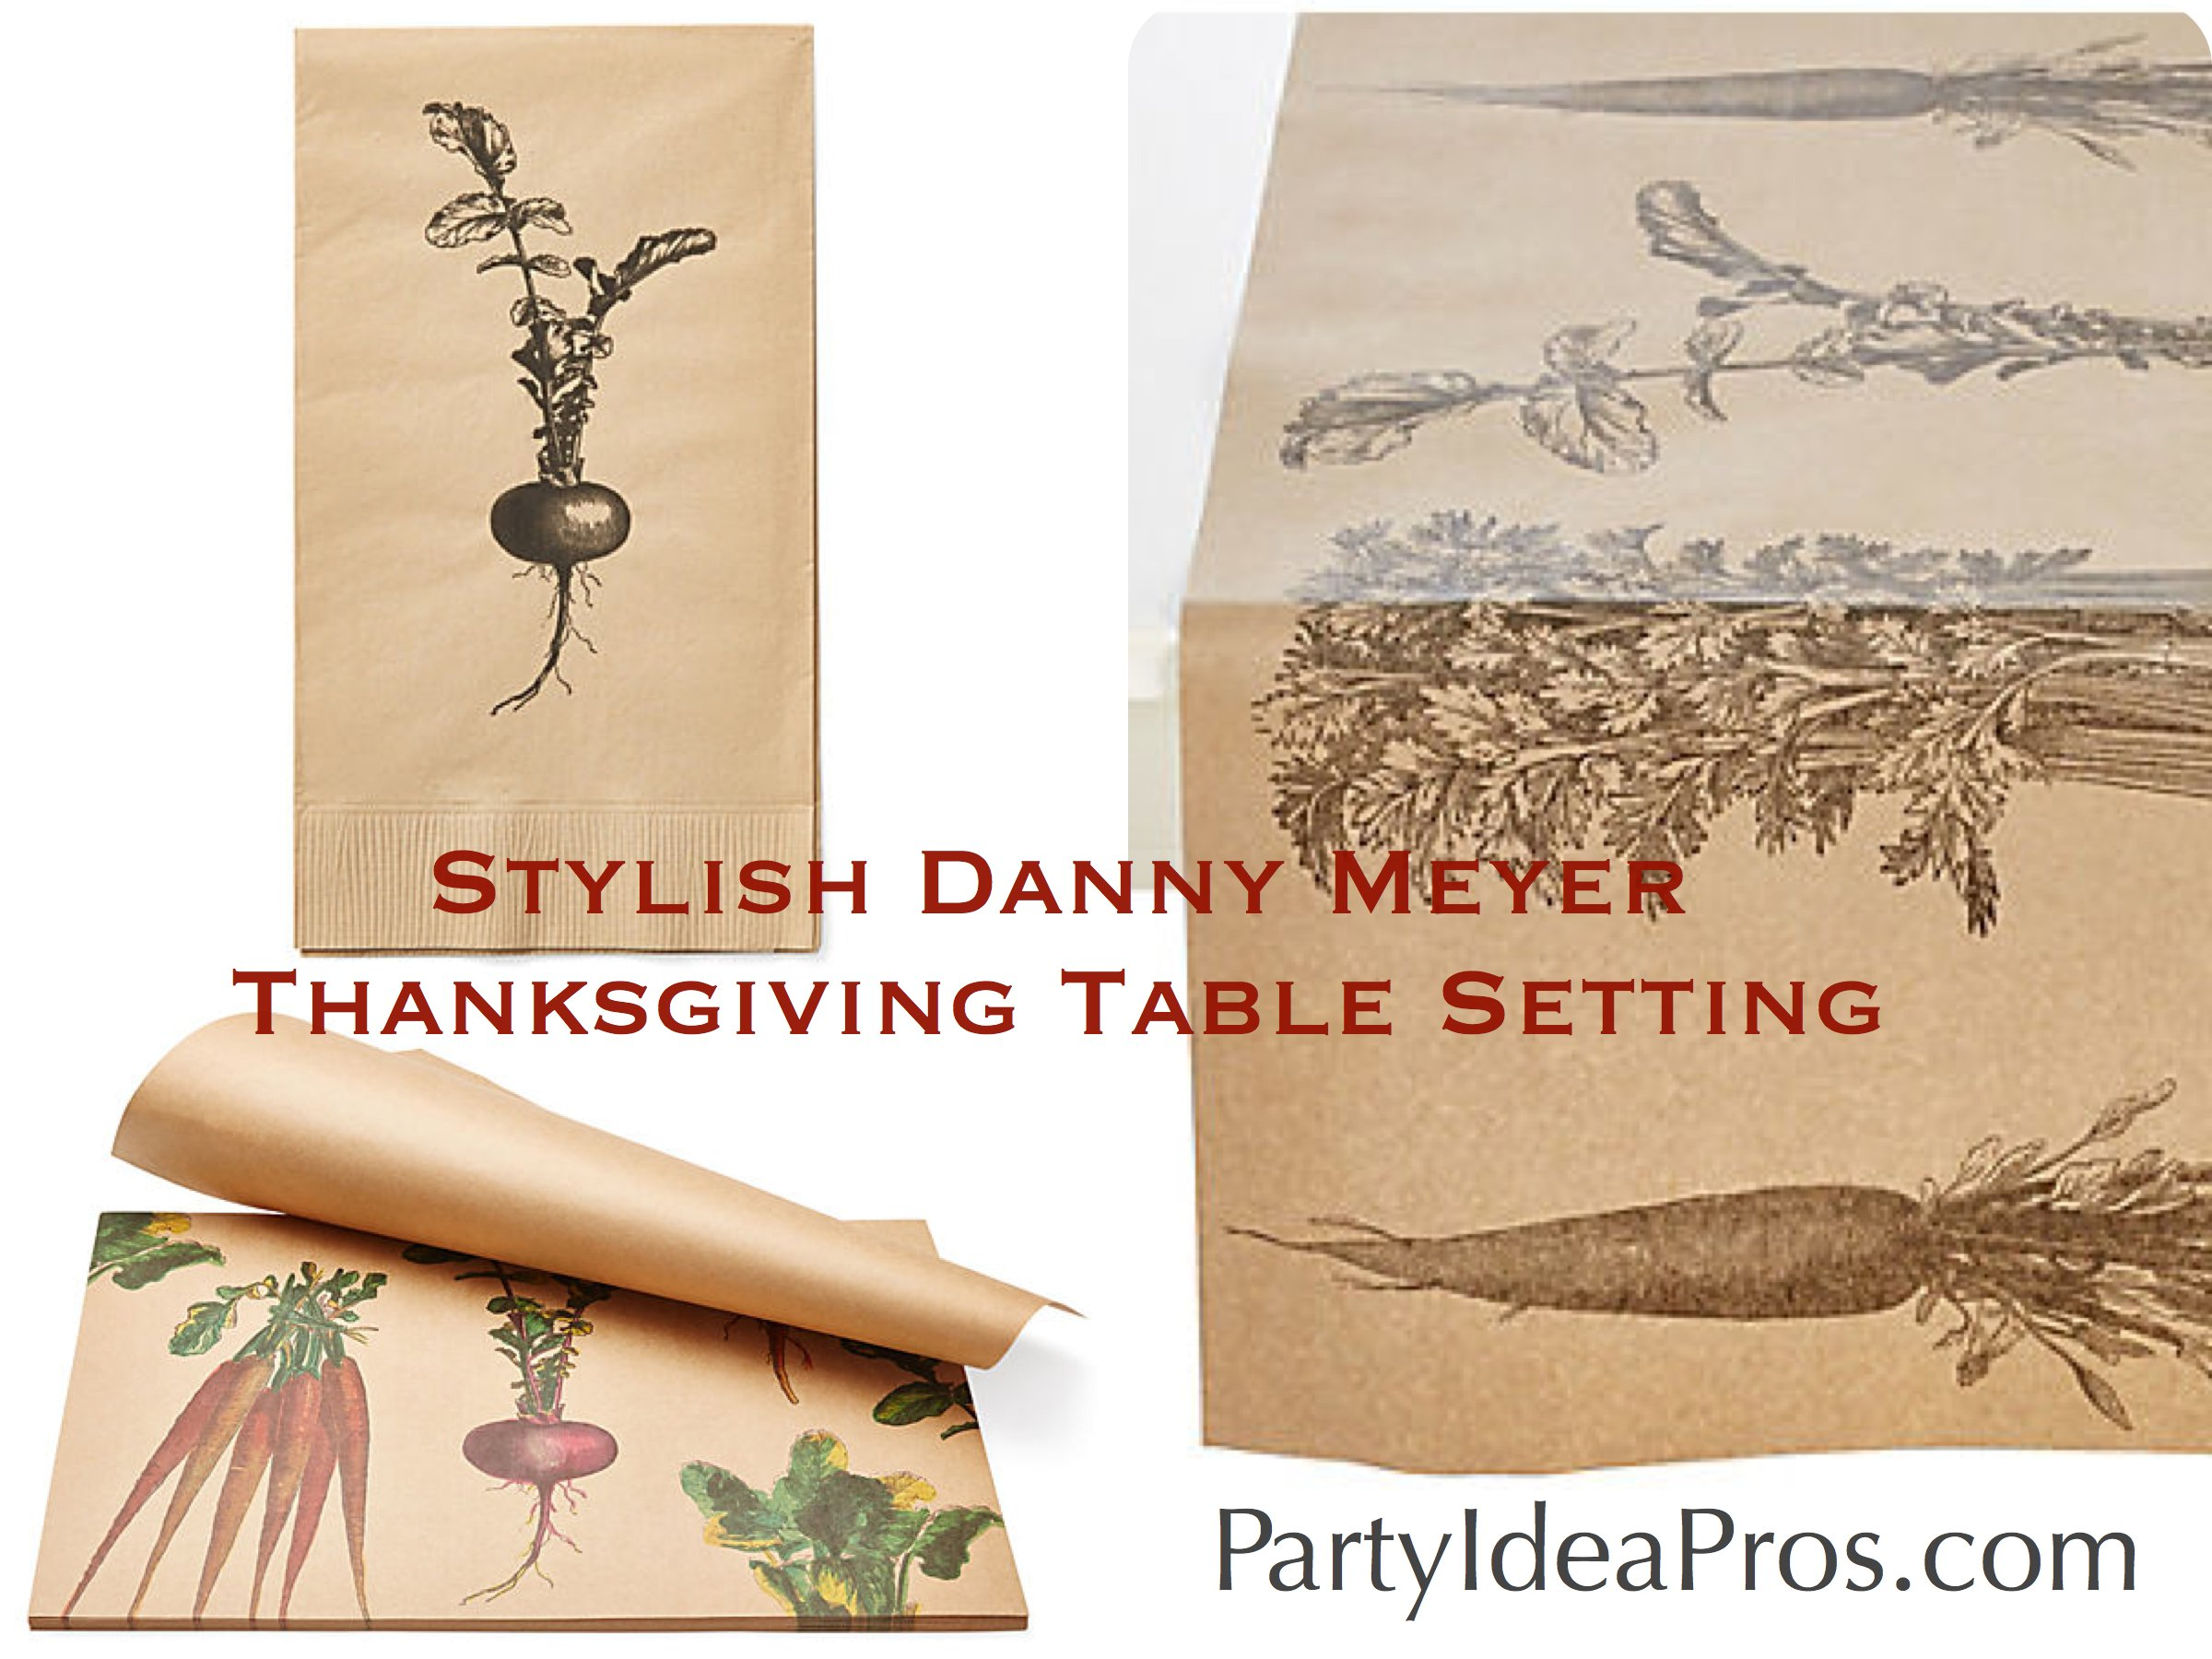 Sylish Danny Meyer Autumn Thanksgiving Table Settings